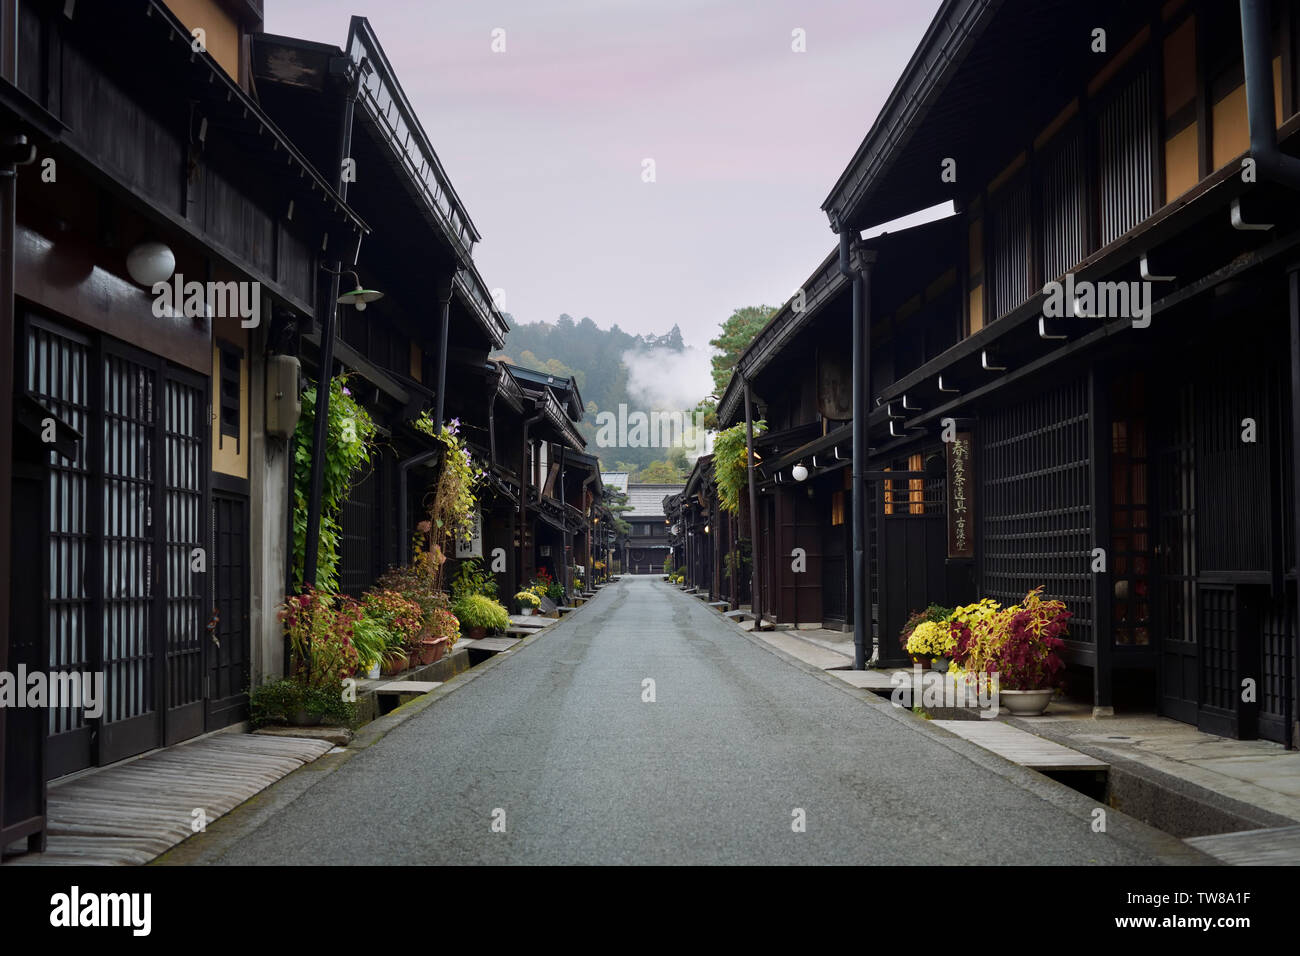 Kami-Sannomachi, old town street of Takayama city in early morning. Kamisannomachi is merchant town street lined with shops and restaurants - Stock Image